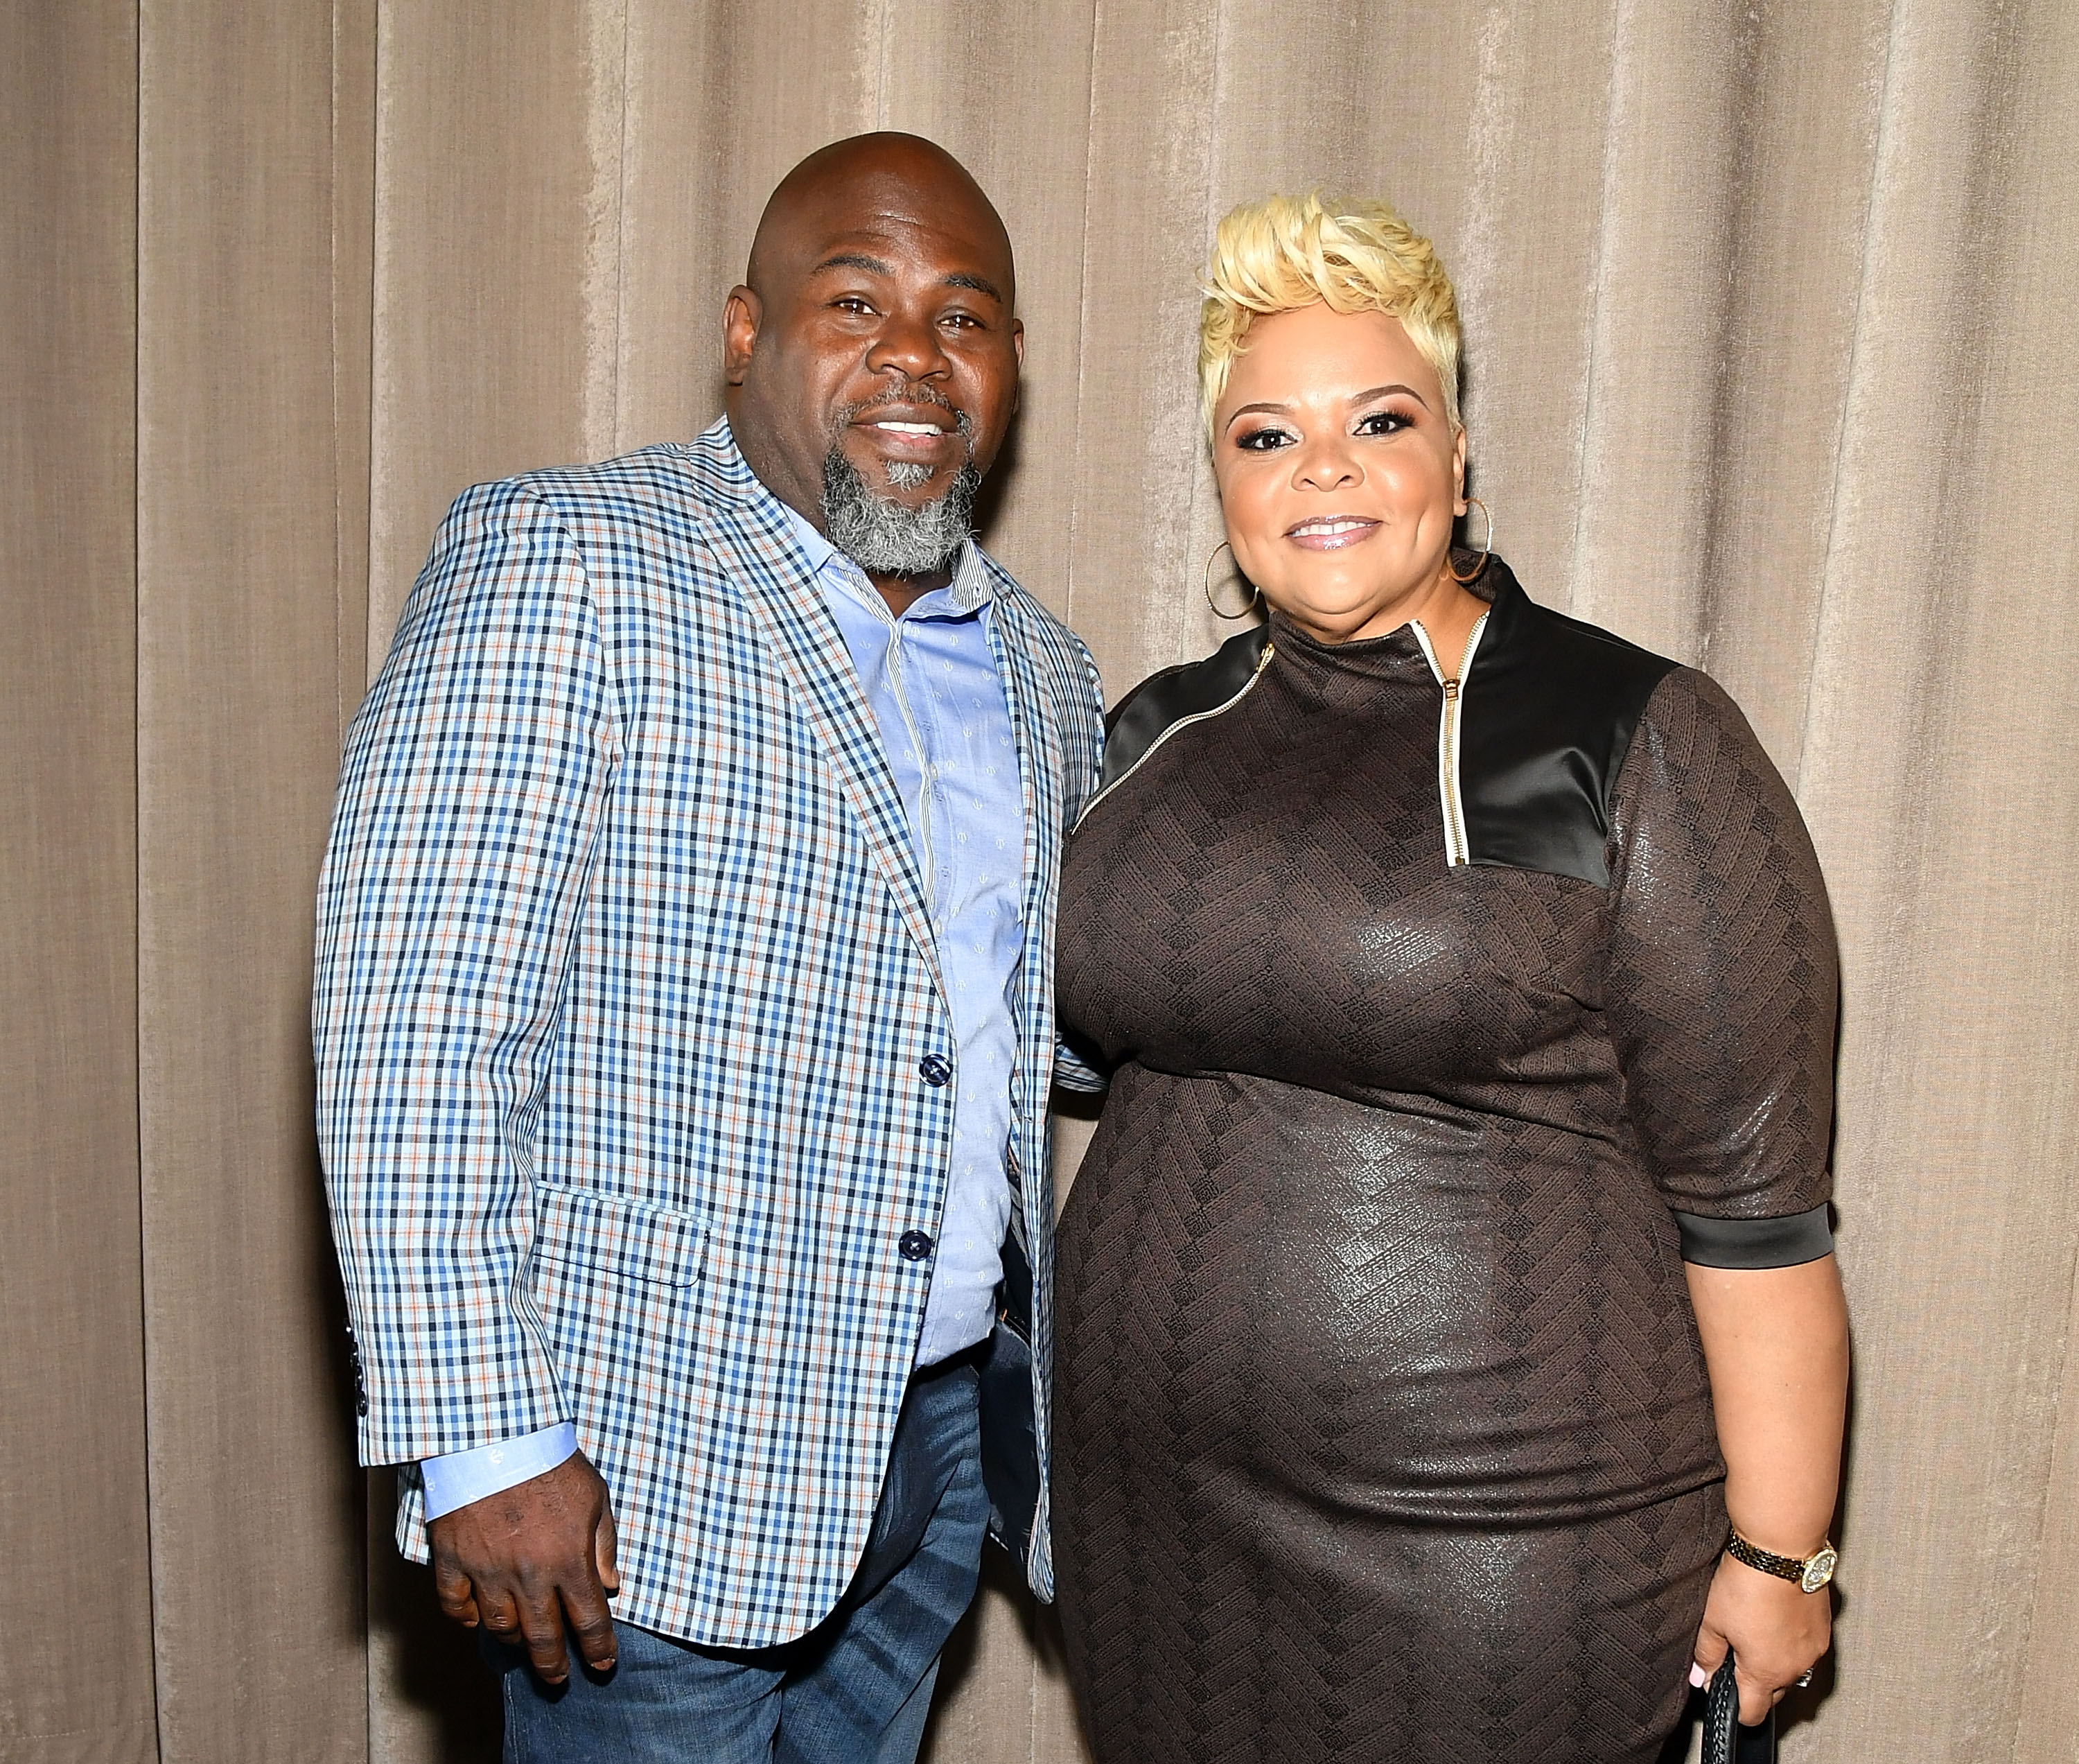 David and Tamela Mann attend TV One Upfront press junket  on April 20, 2017 | Photo: Getty Images